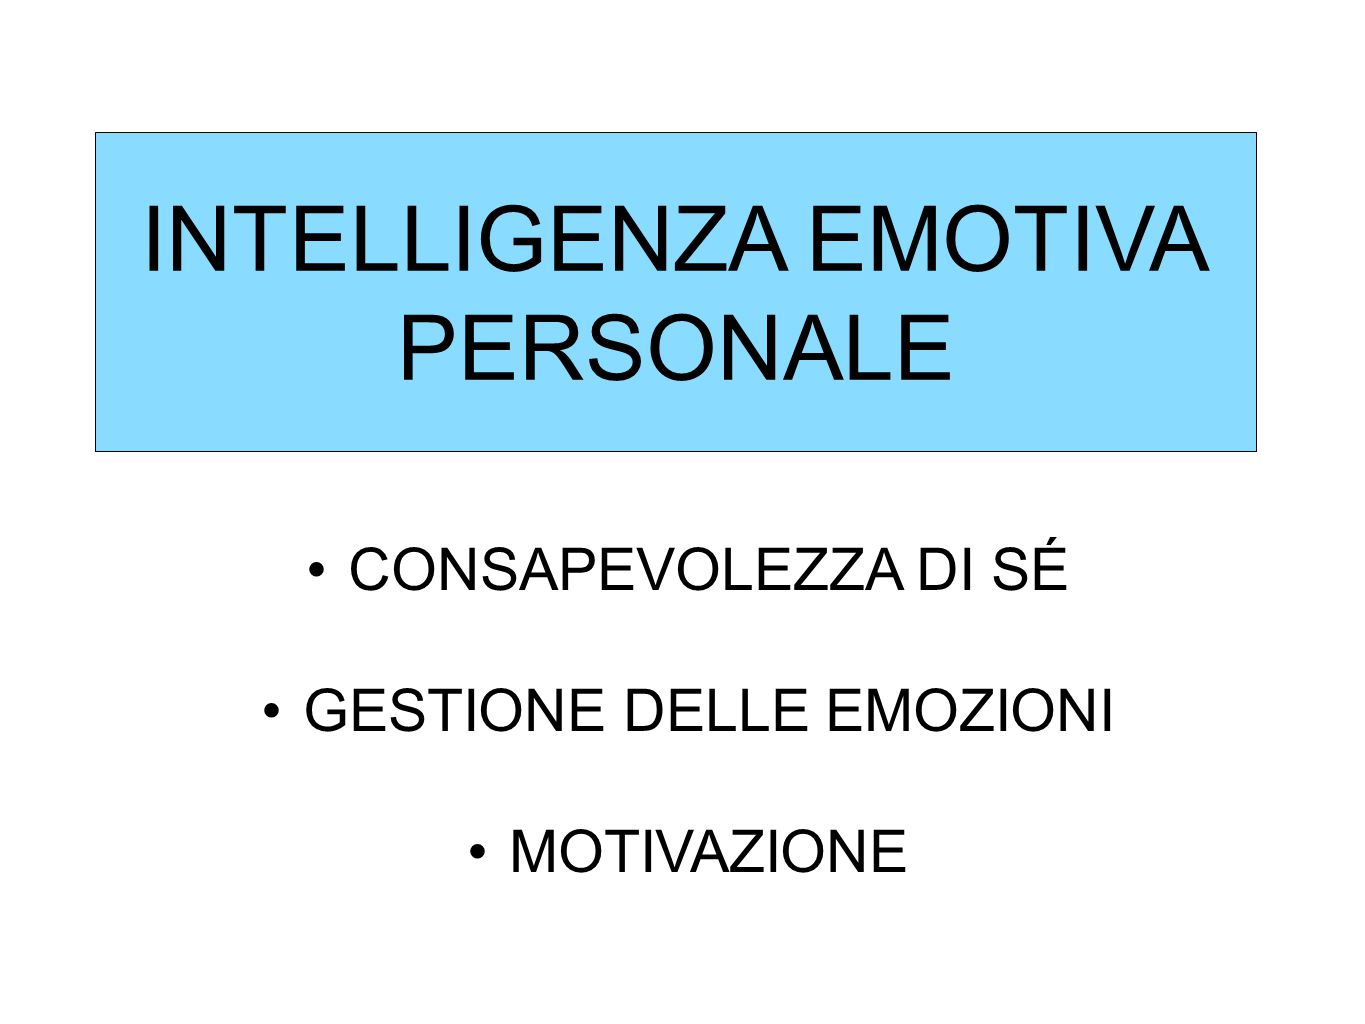 INTELLIGENZA EMOTIVA PERSONALE